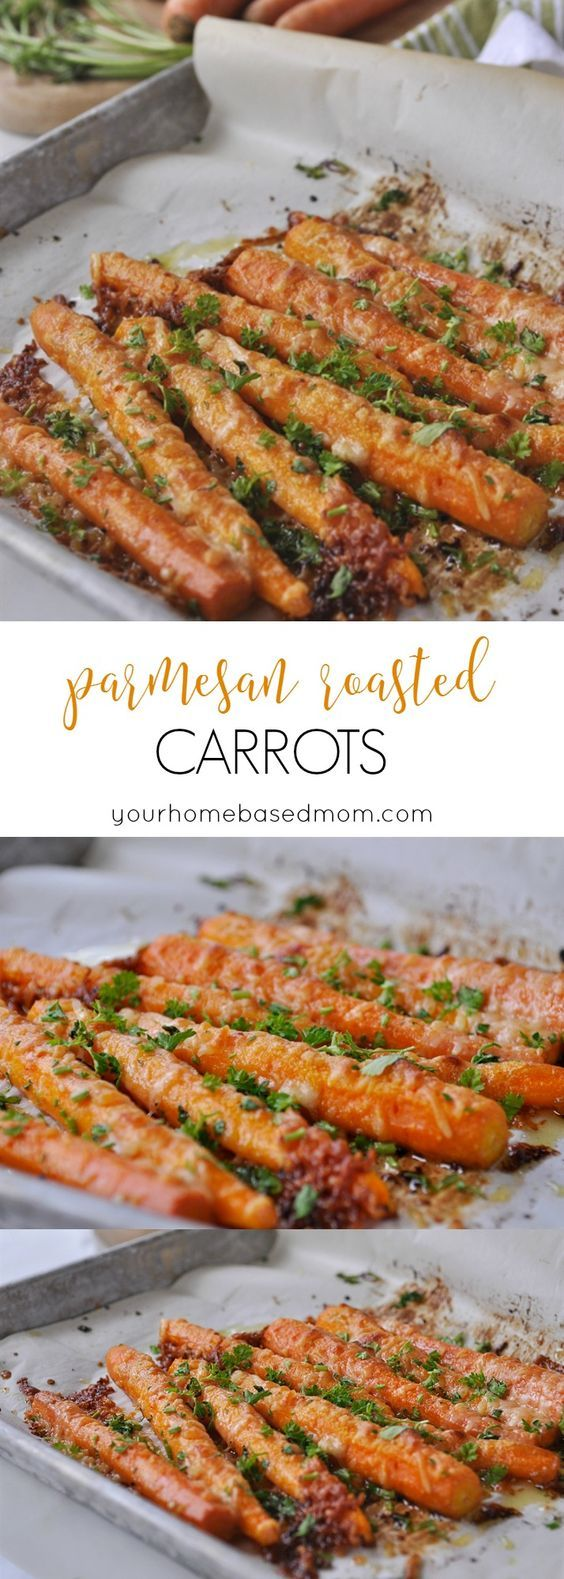 Parmesan Roasted Carrots – the perfect way to get your family to eat their veggies